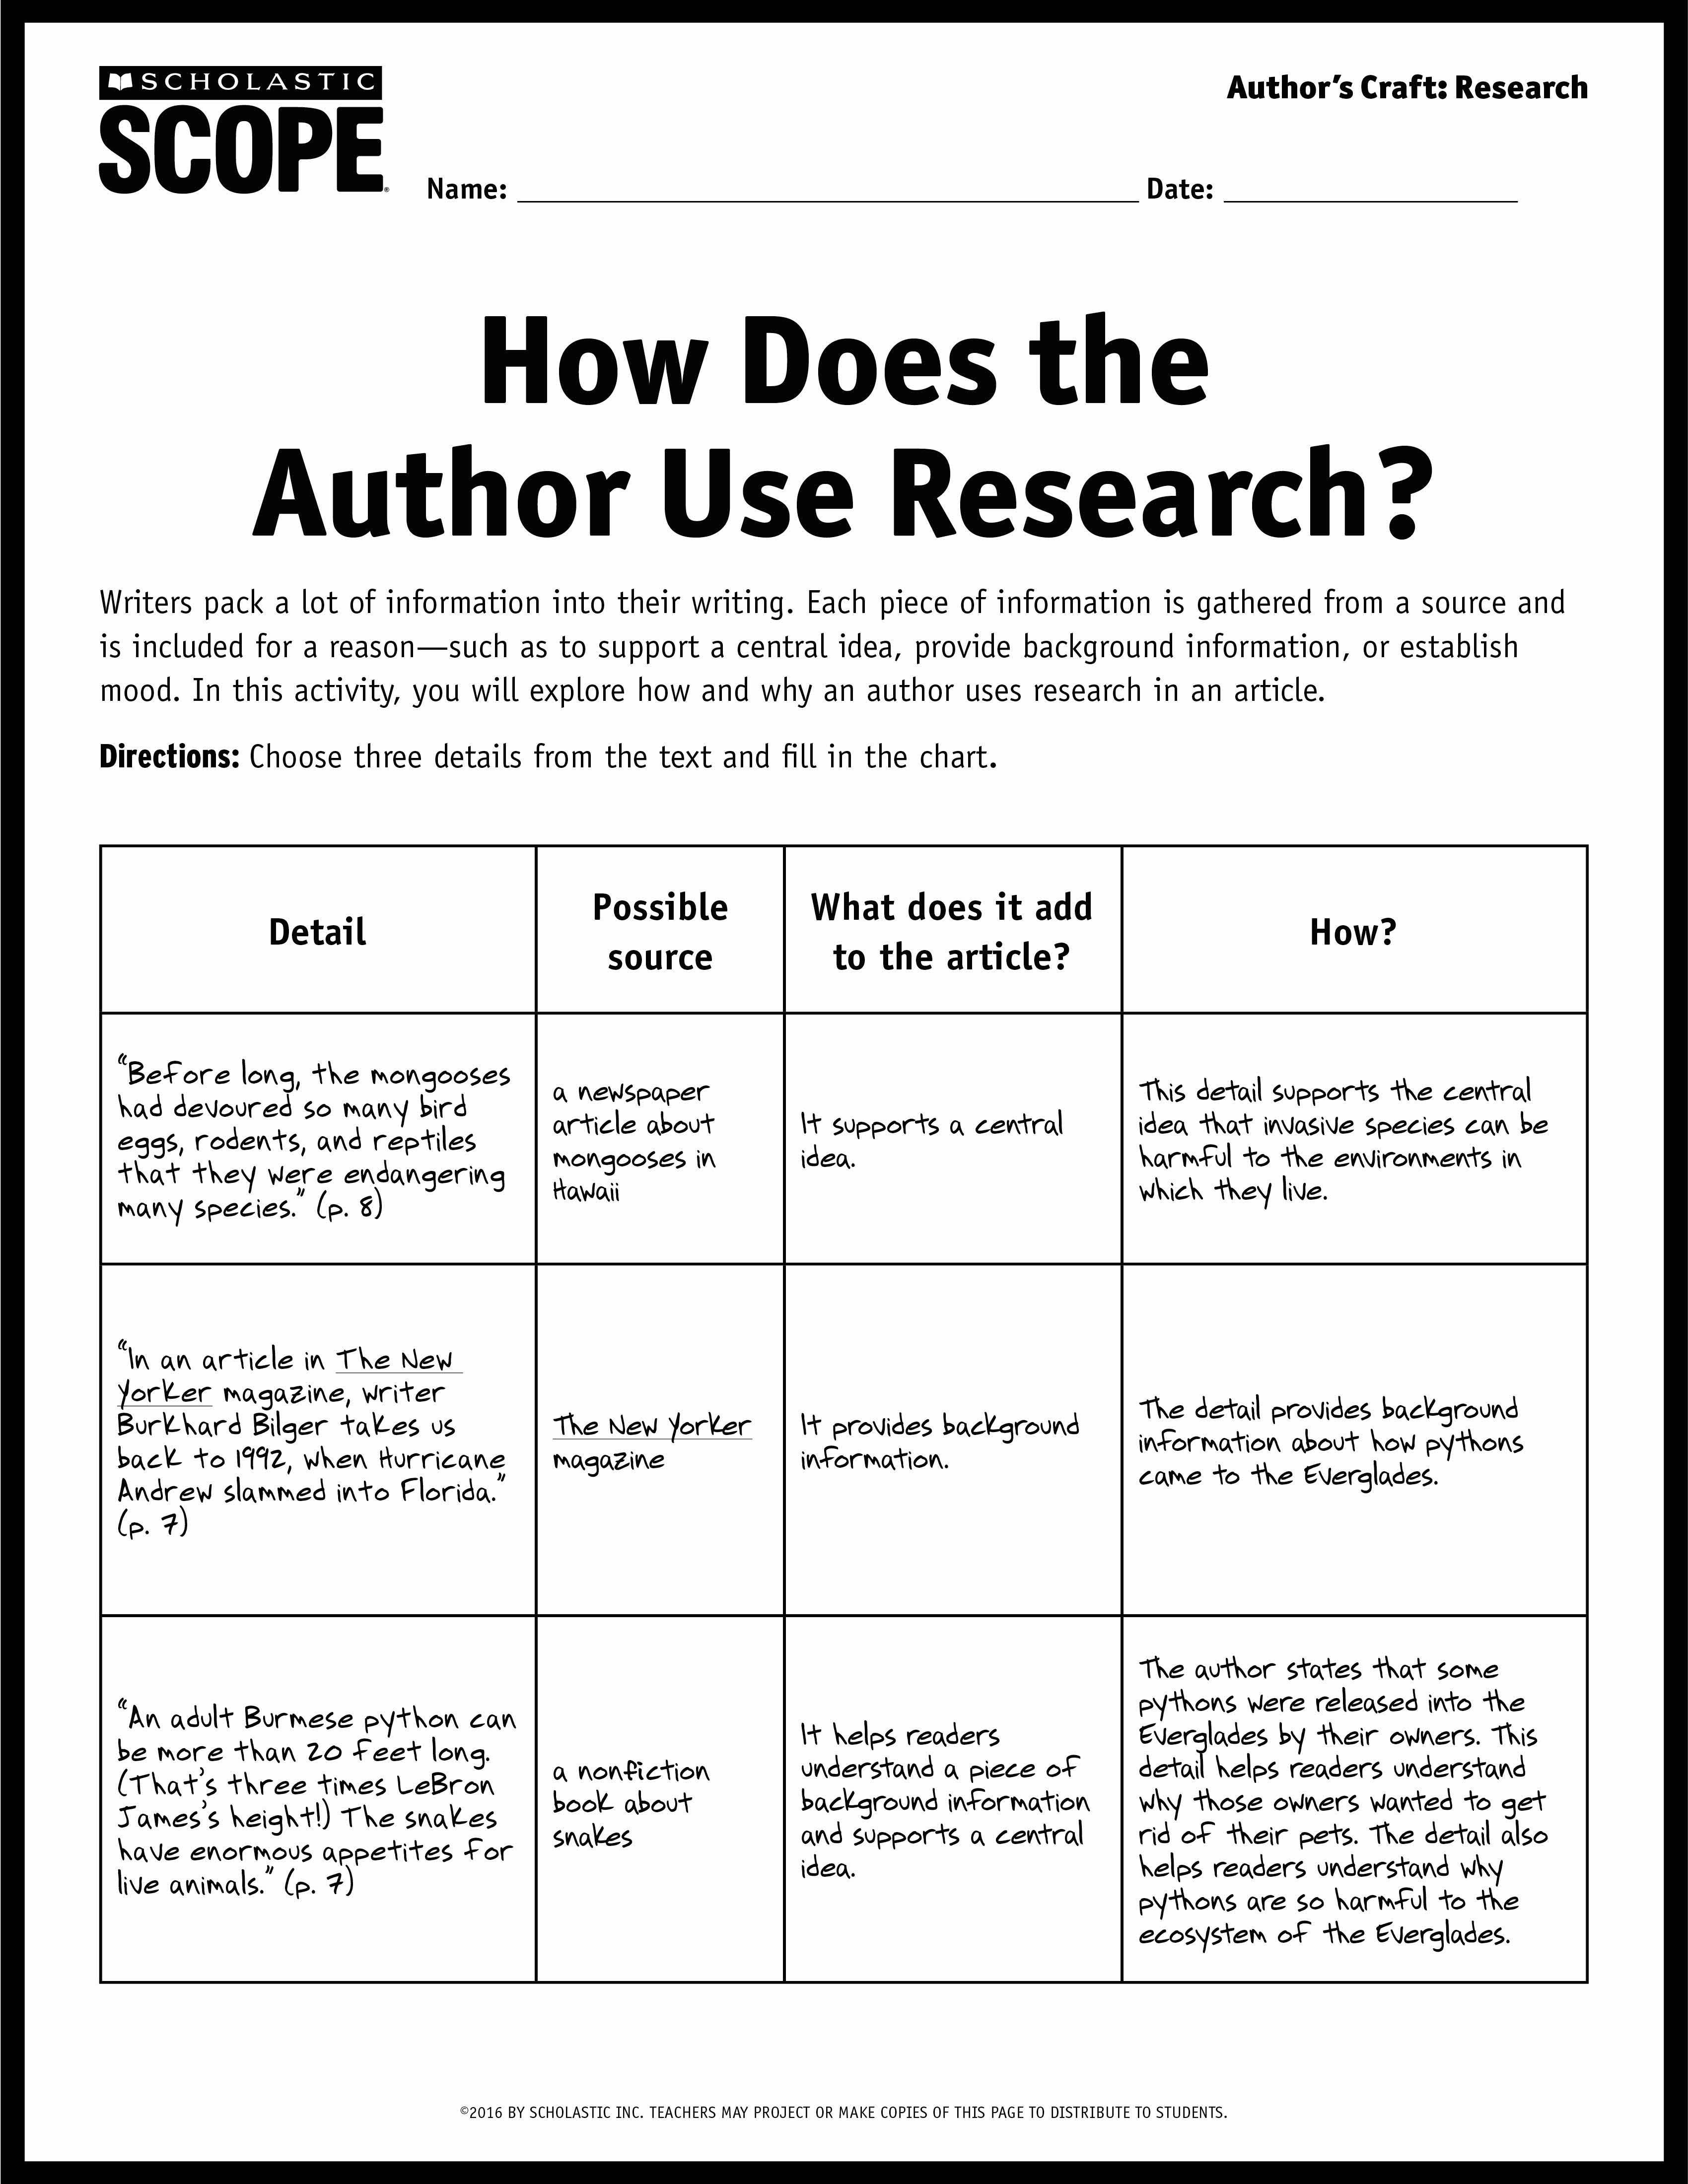 10 Attractive Middle School Newspaper Article Ideas incorporating research into writing using scope nonfiction middle 2021